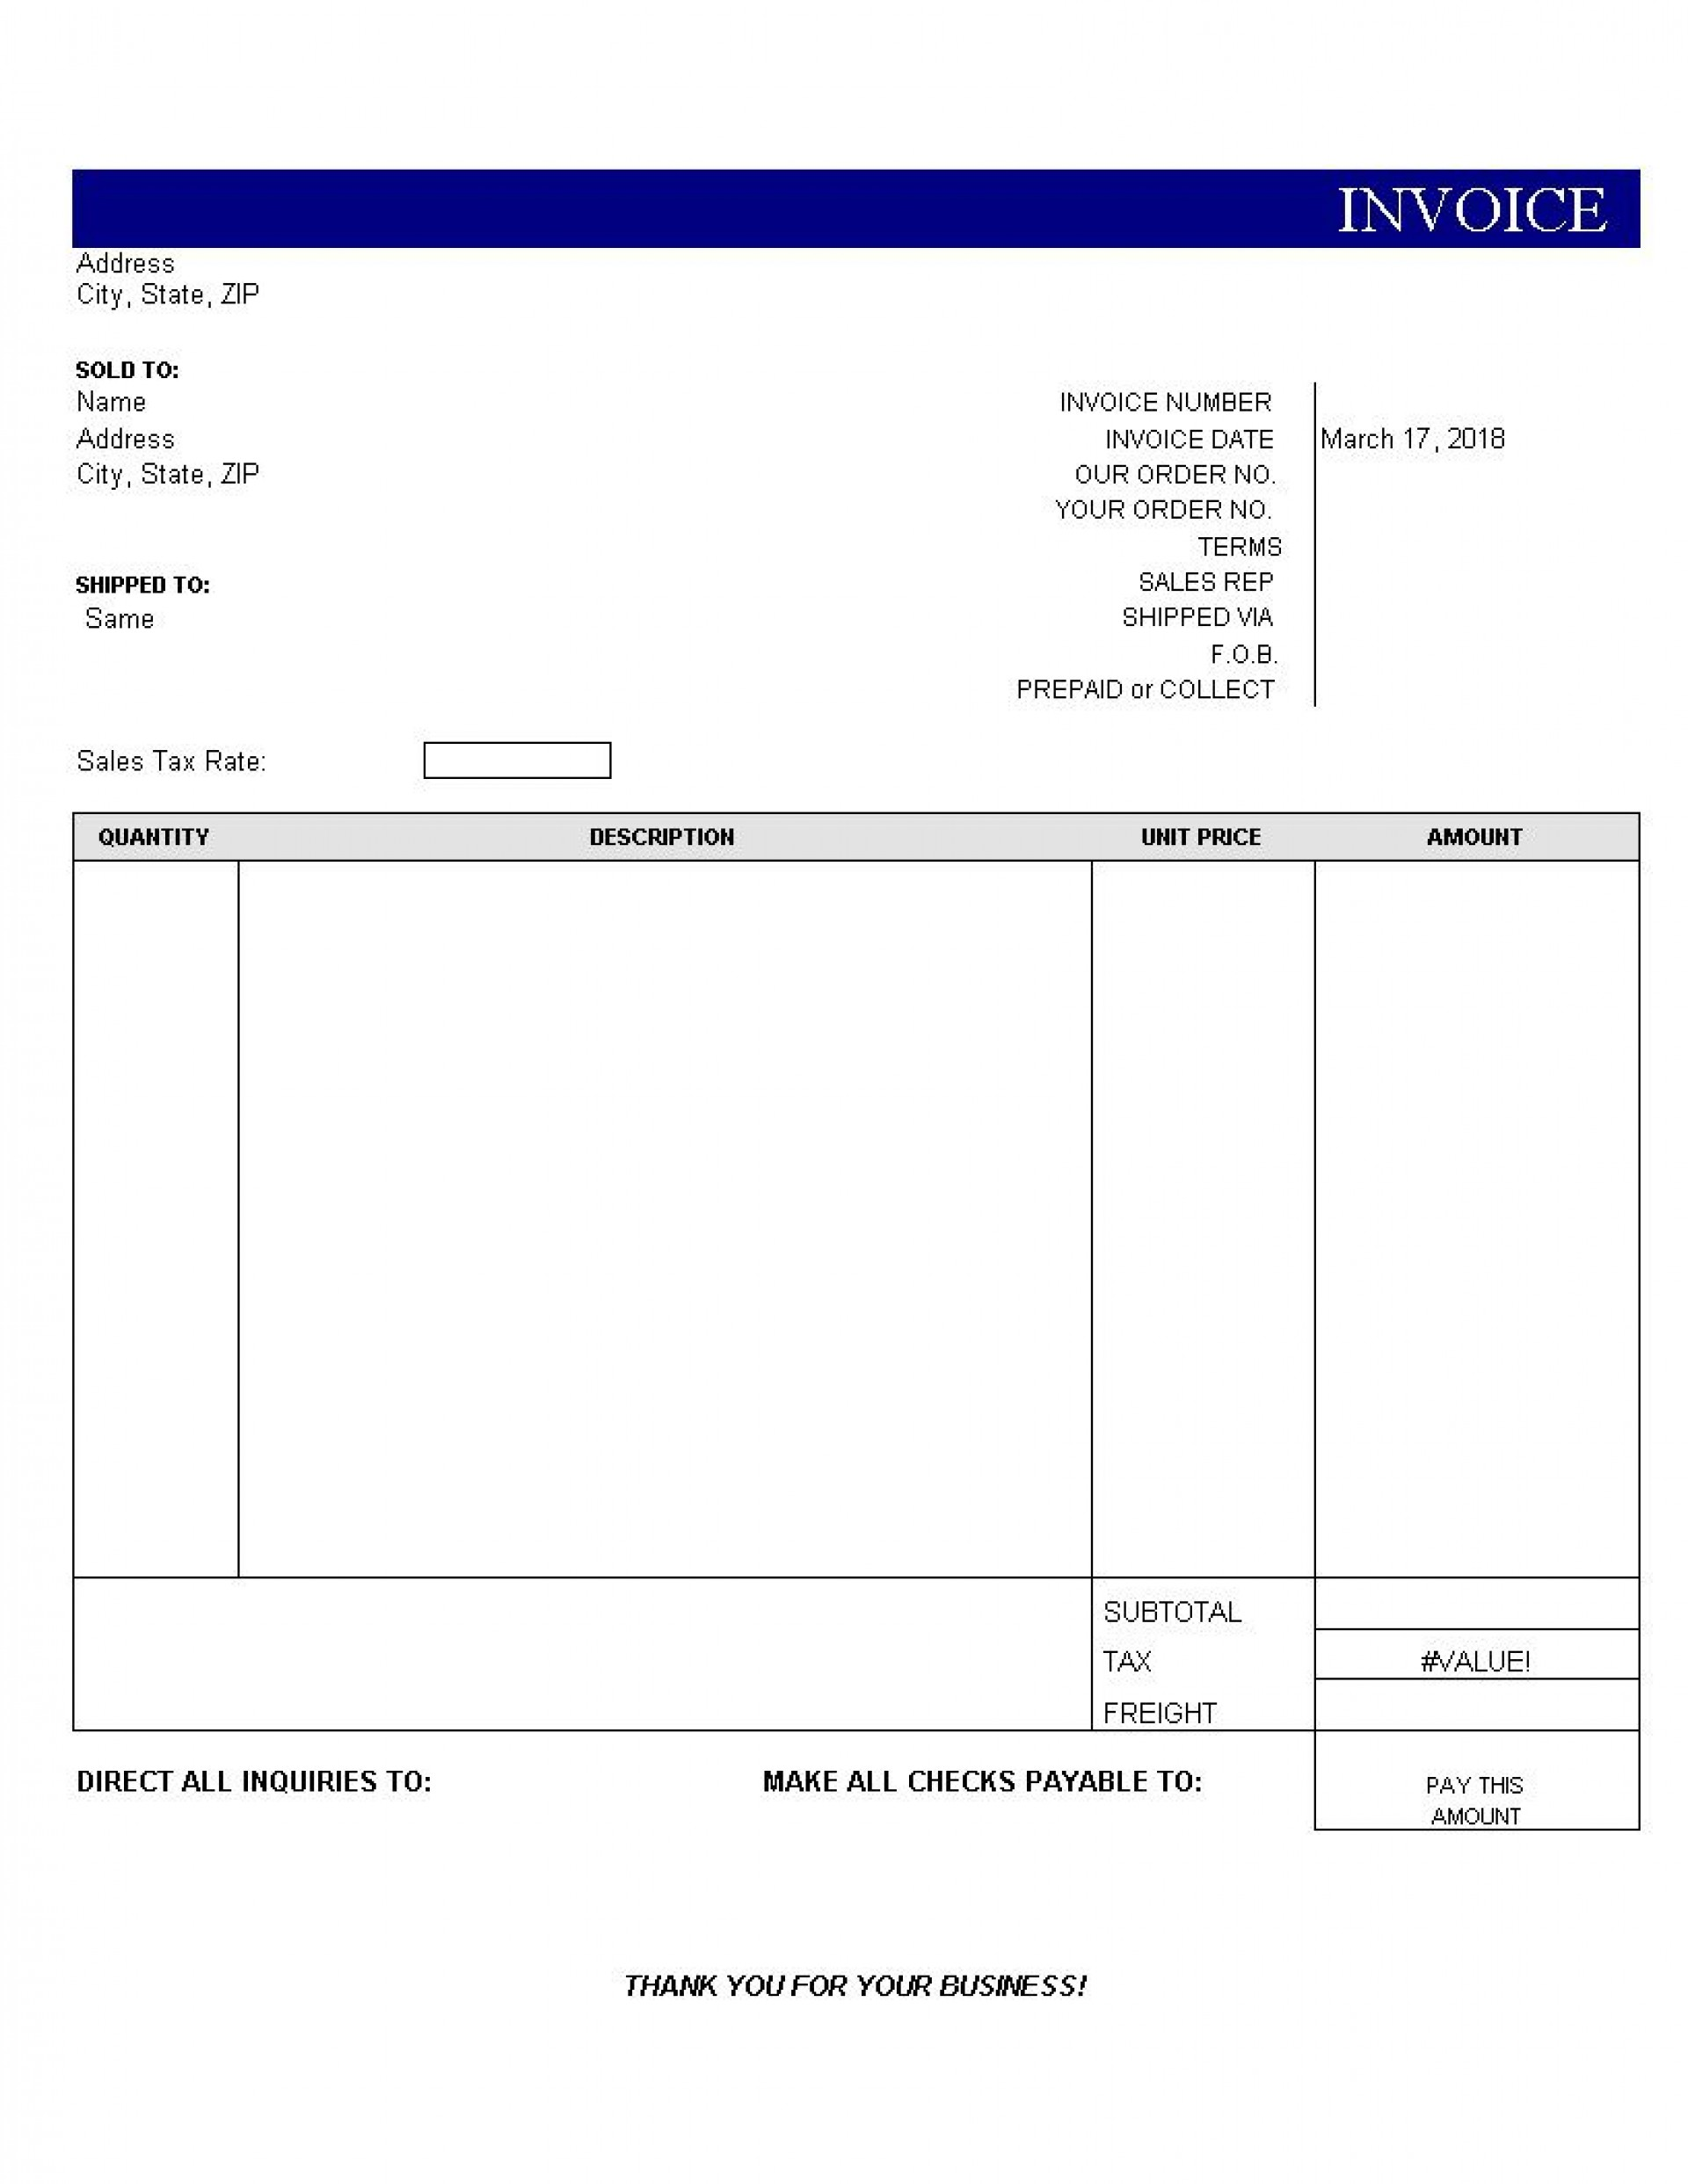 003 Stirring Blank Invoice Template Excel Image  Free Download Receipt1920